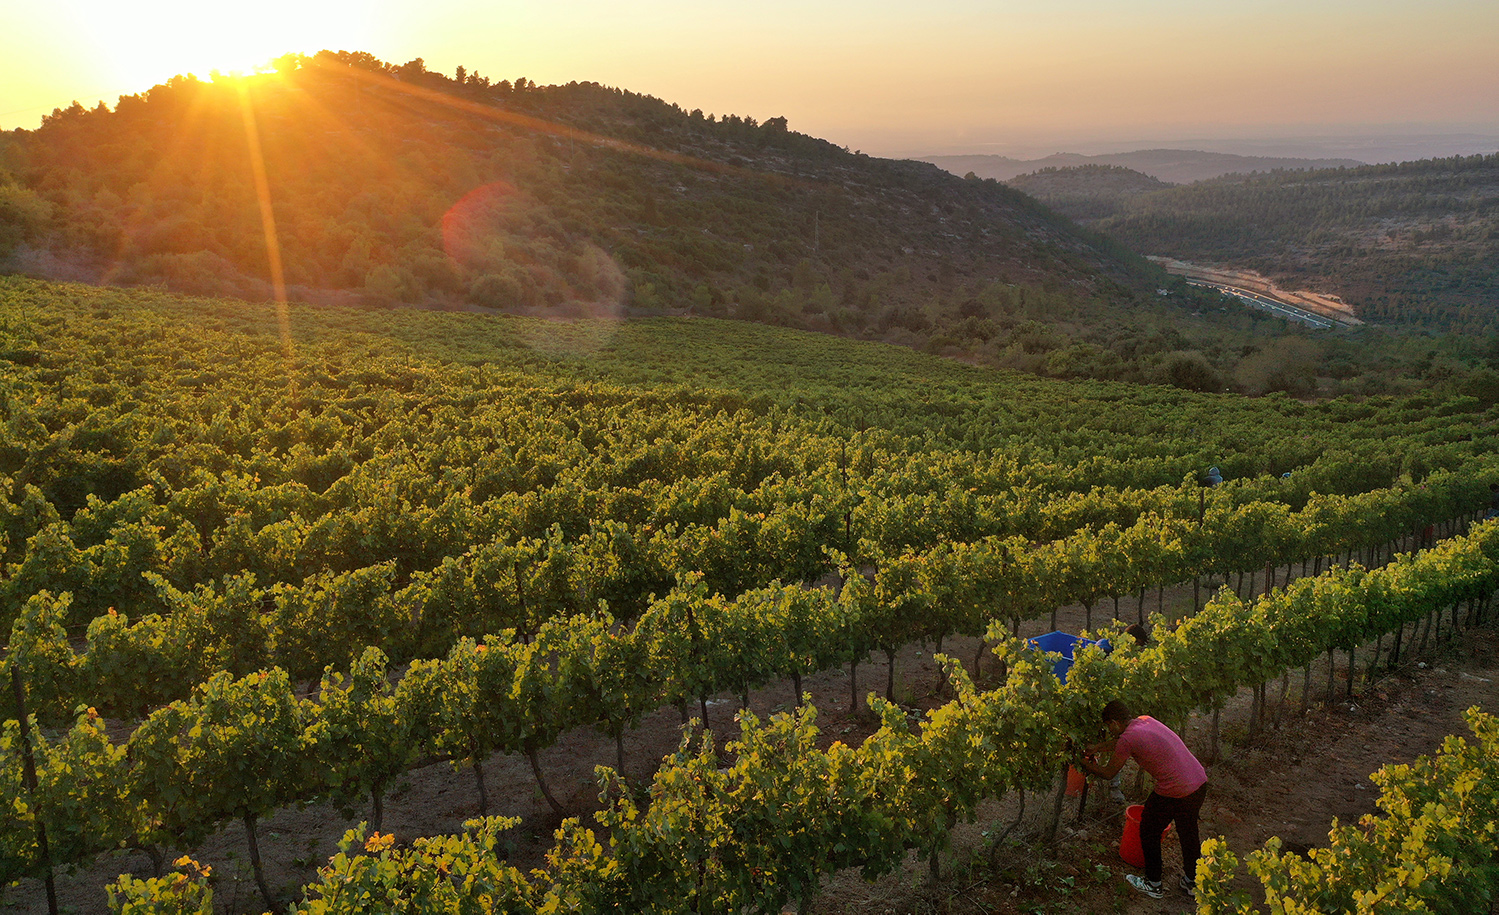 A farm worker harvests cabernet sauvignon grapes at Tzora Winery in Israel. David Silverman/Getty Images.